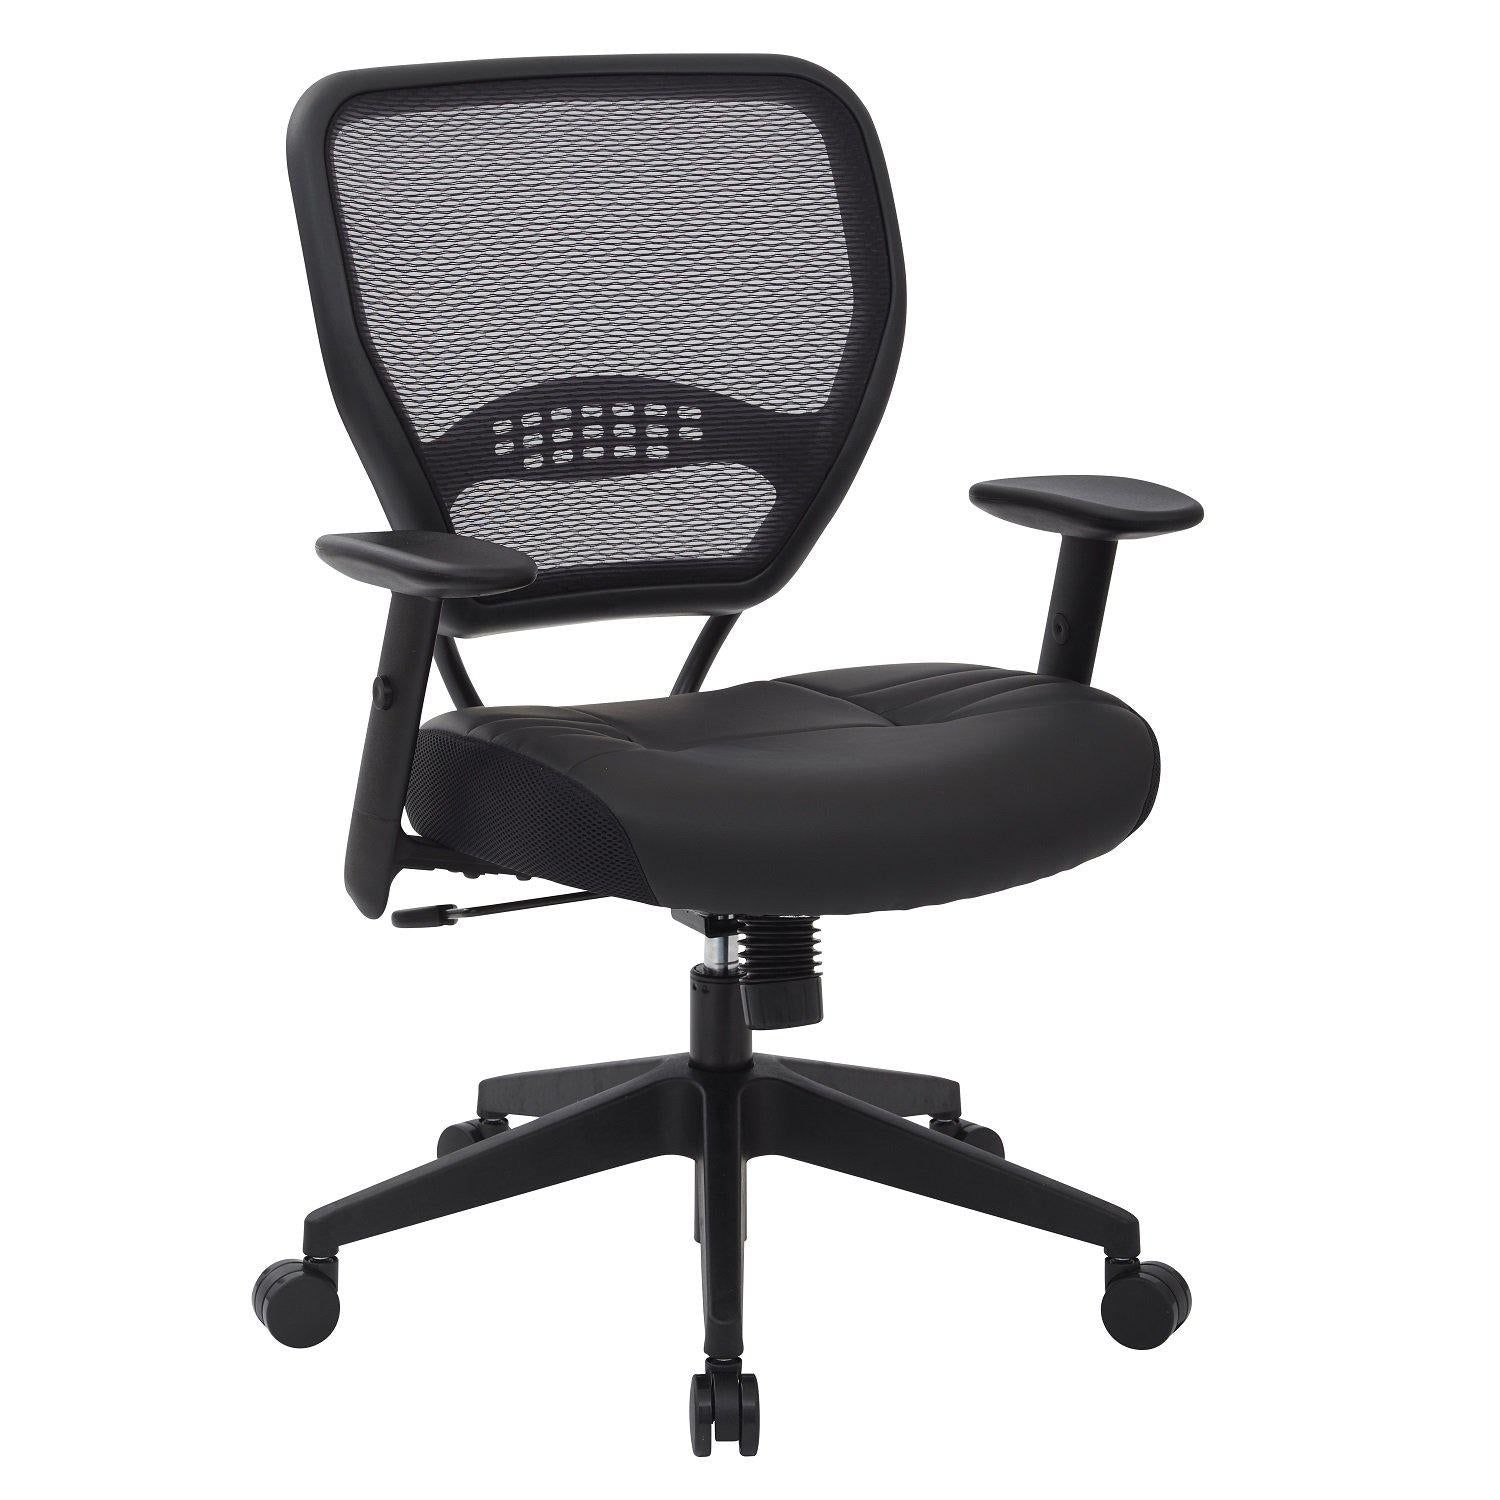 Professional Dark AirGrid® Managers Chair